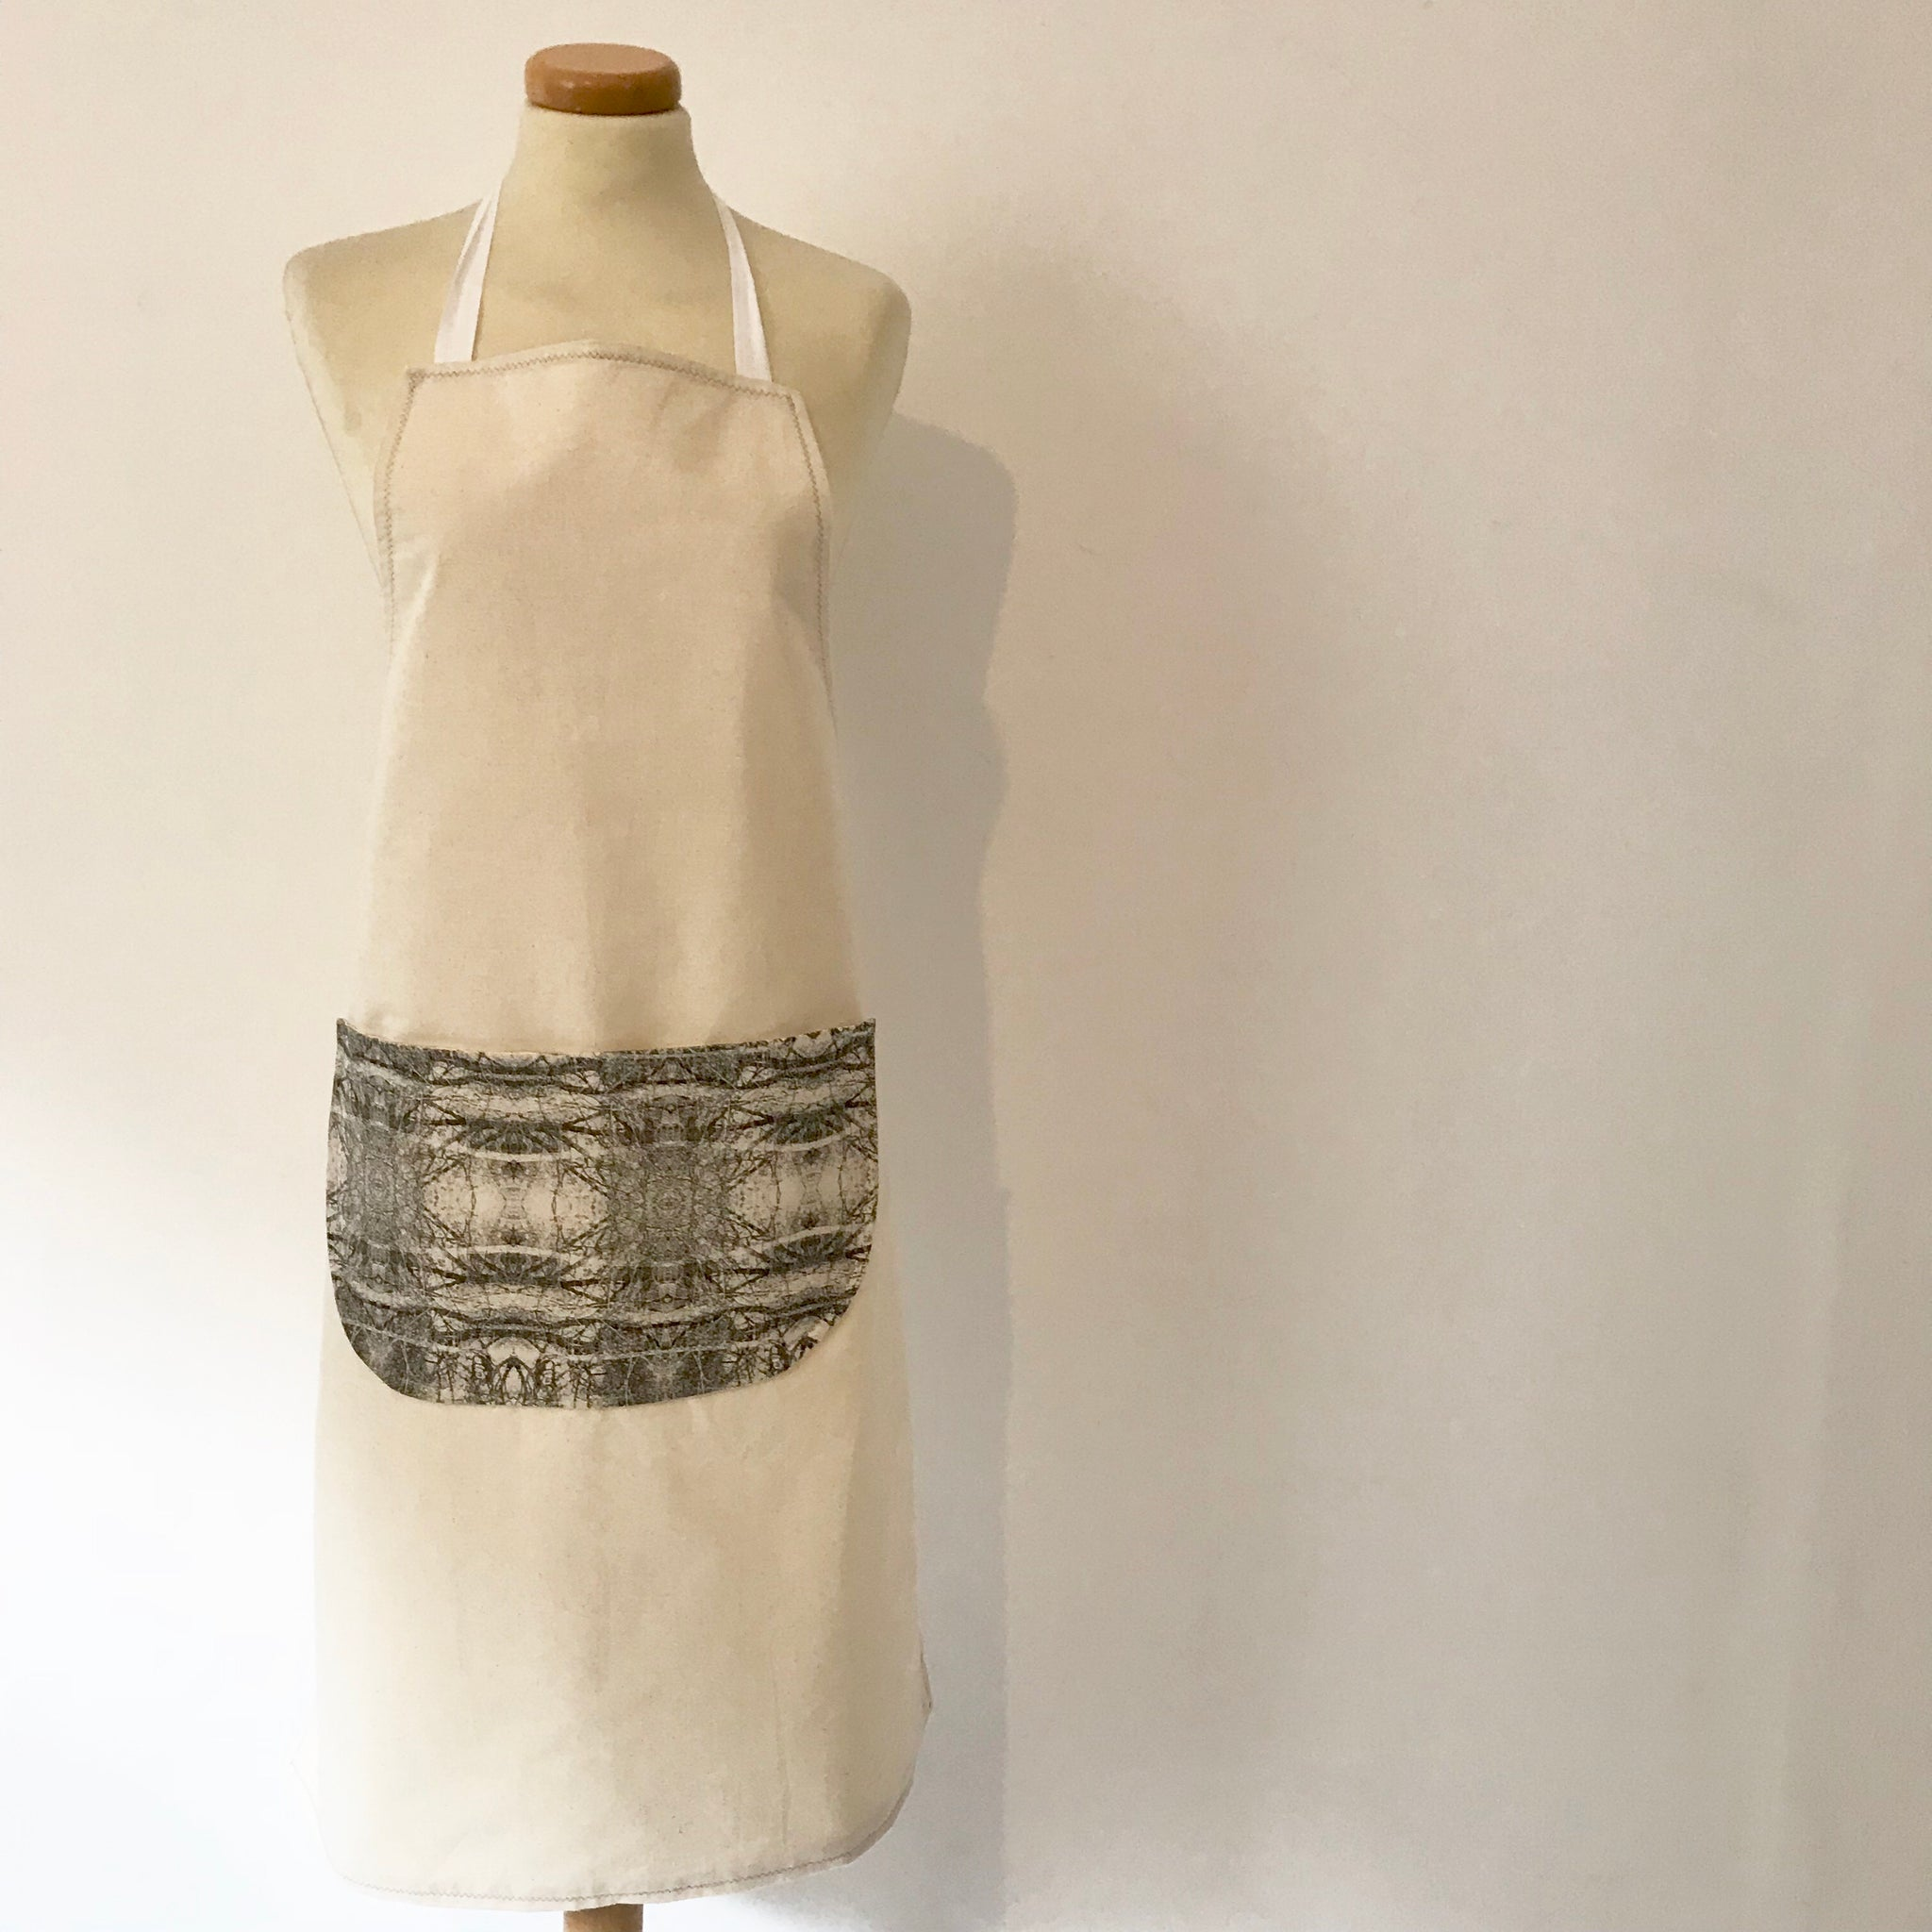 Chefs Apron 'Into The Woods Collection'